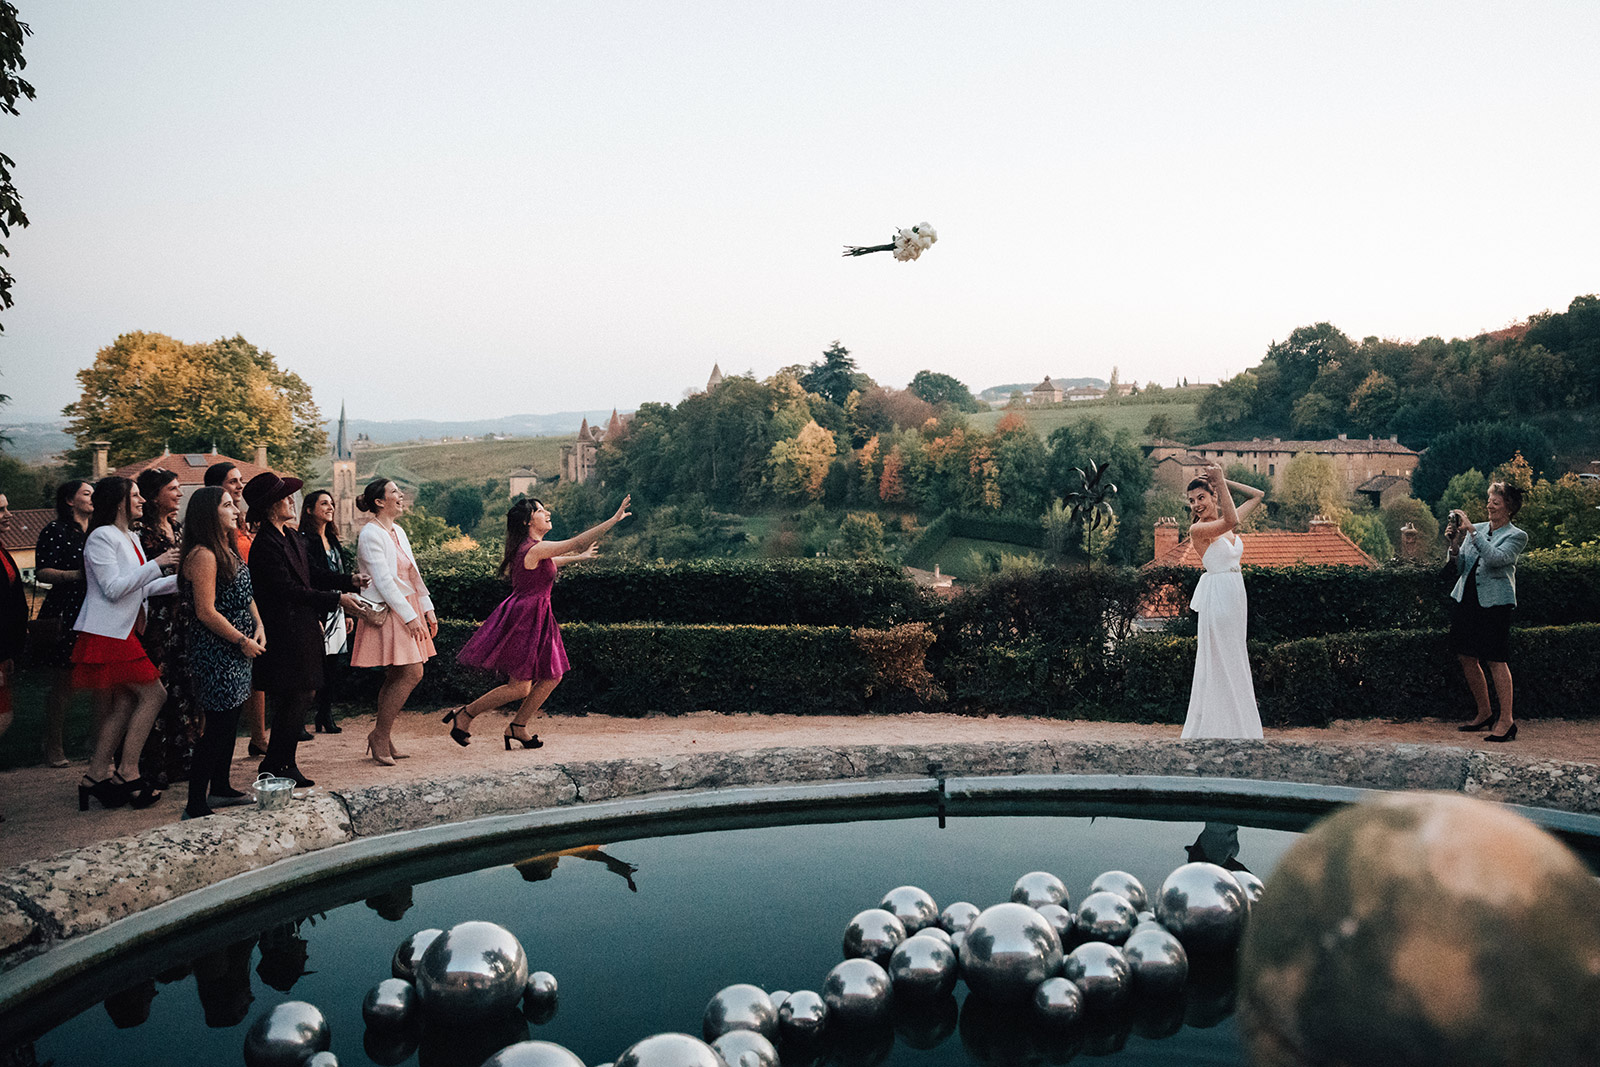 How to choose your wedding photographer 2018 2019 Best Wedding Photographer comment choisir son photographe de mariage 2018 2019 meilleur photographe de mariage meilleur photographe de mariage Lyon Photographe mariage Lyon Photographe reportage mariage Lyon